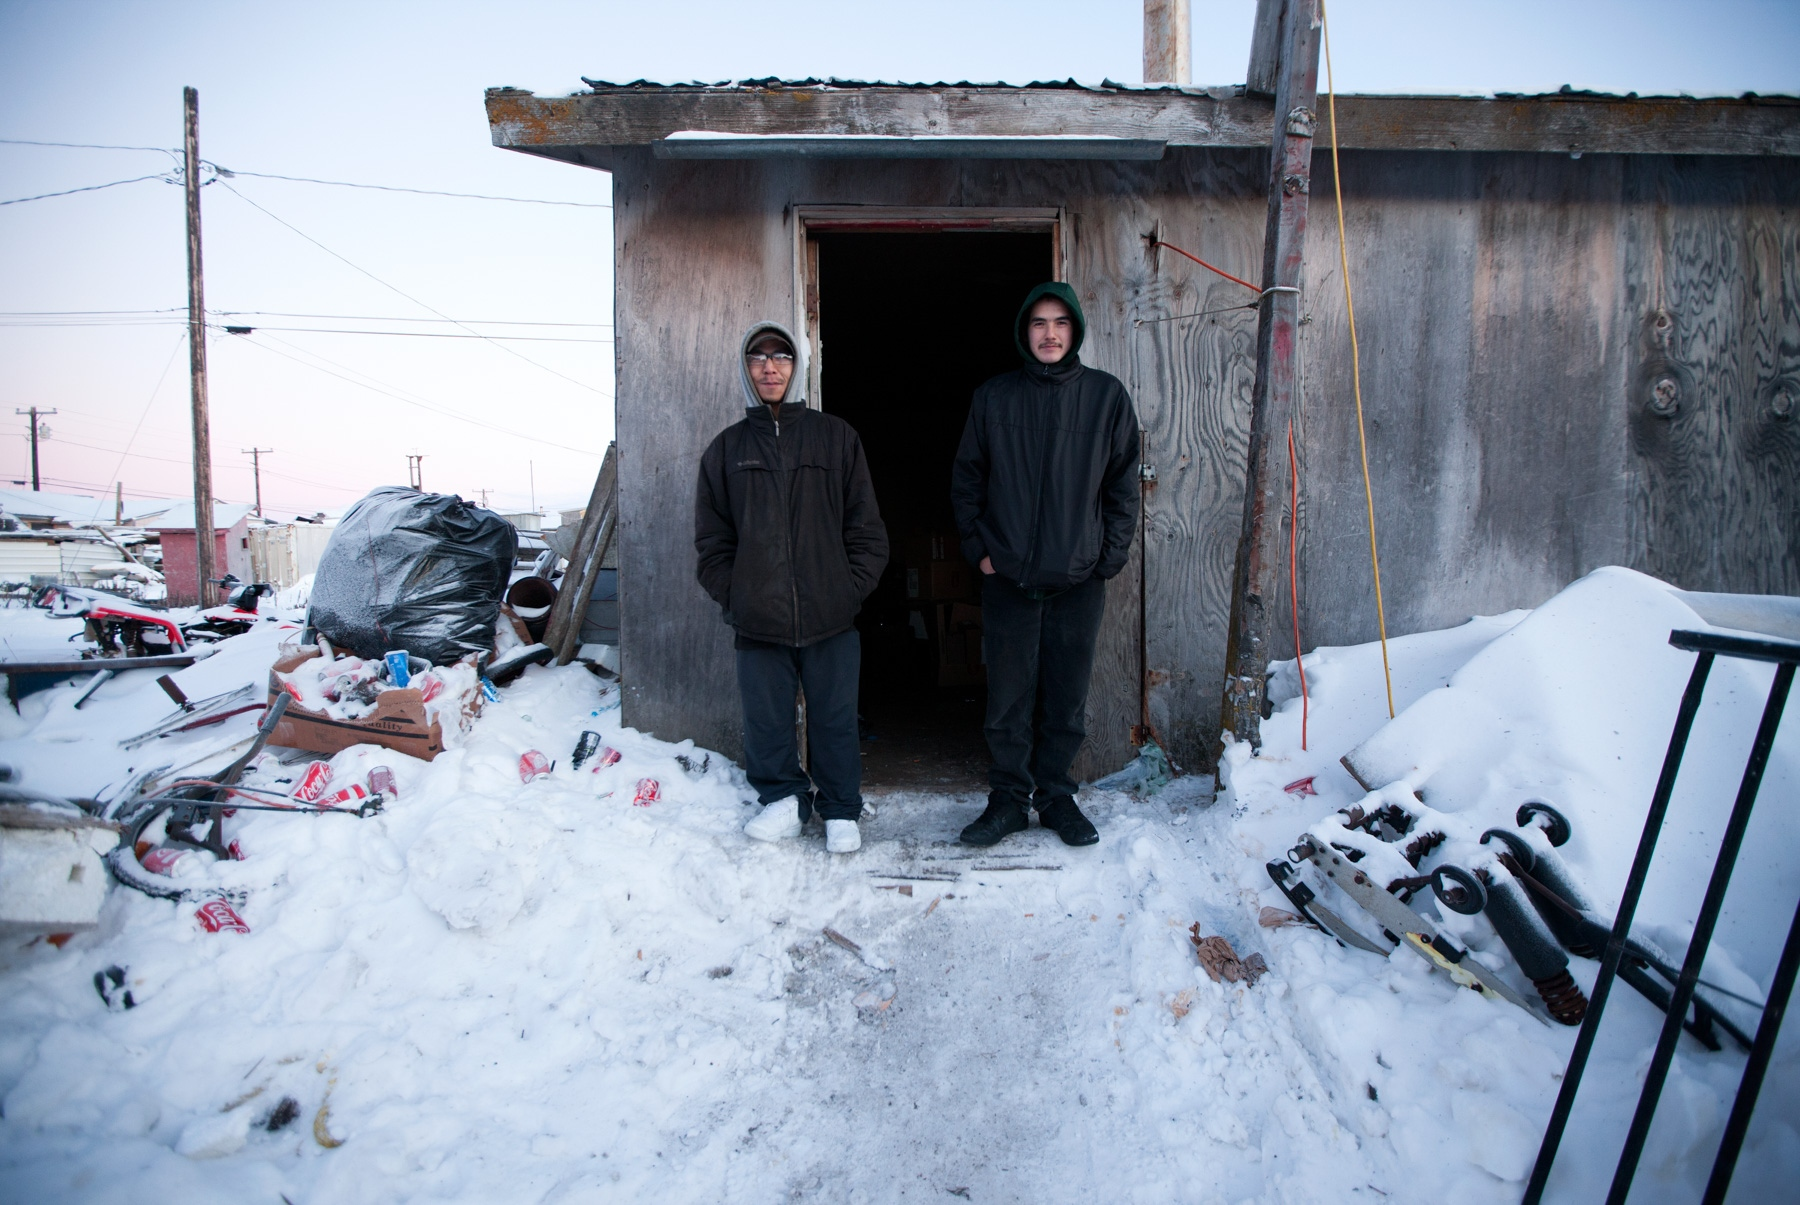 Brandon Naykpuk (left) and Justin Schultzi (right) were taking a smoke break in front of their workshop.